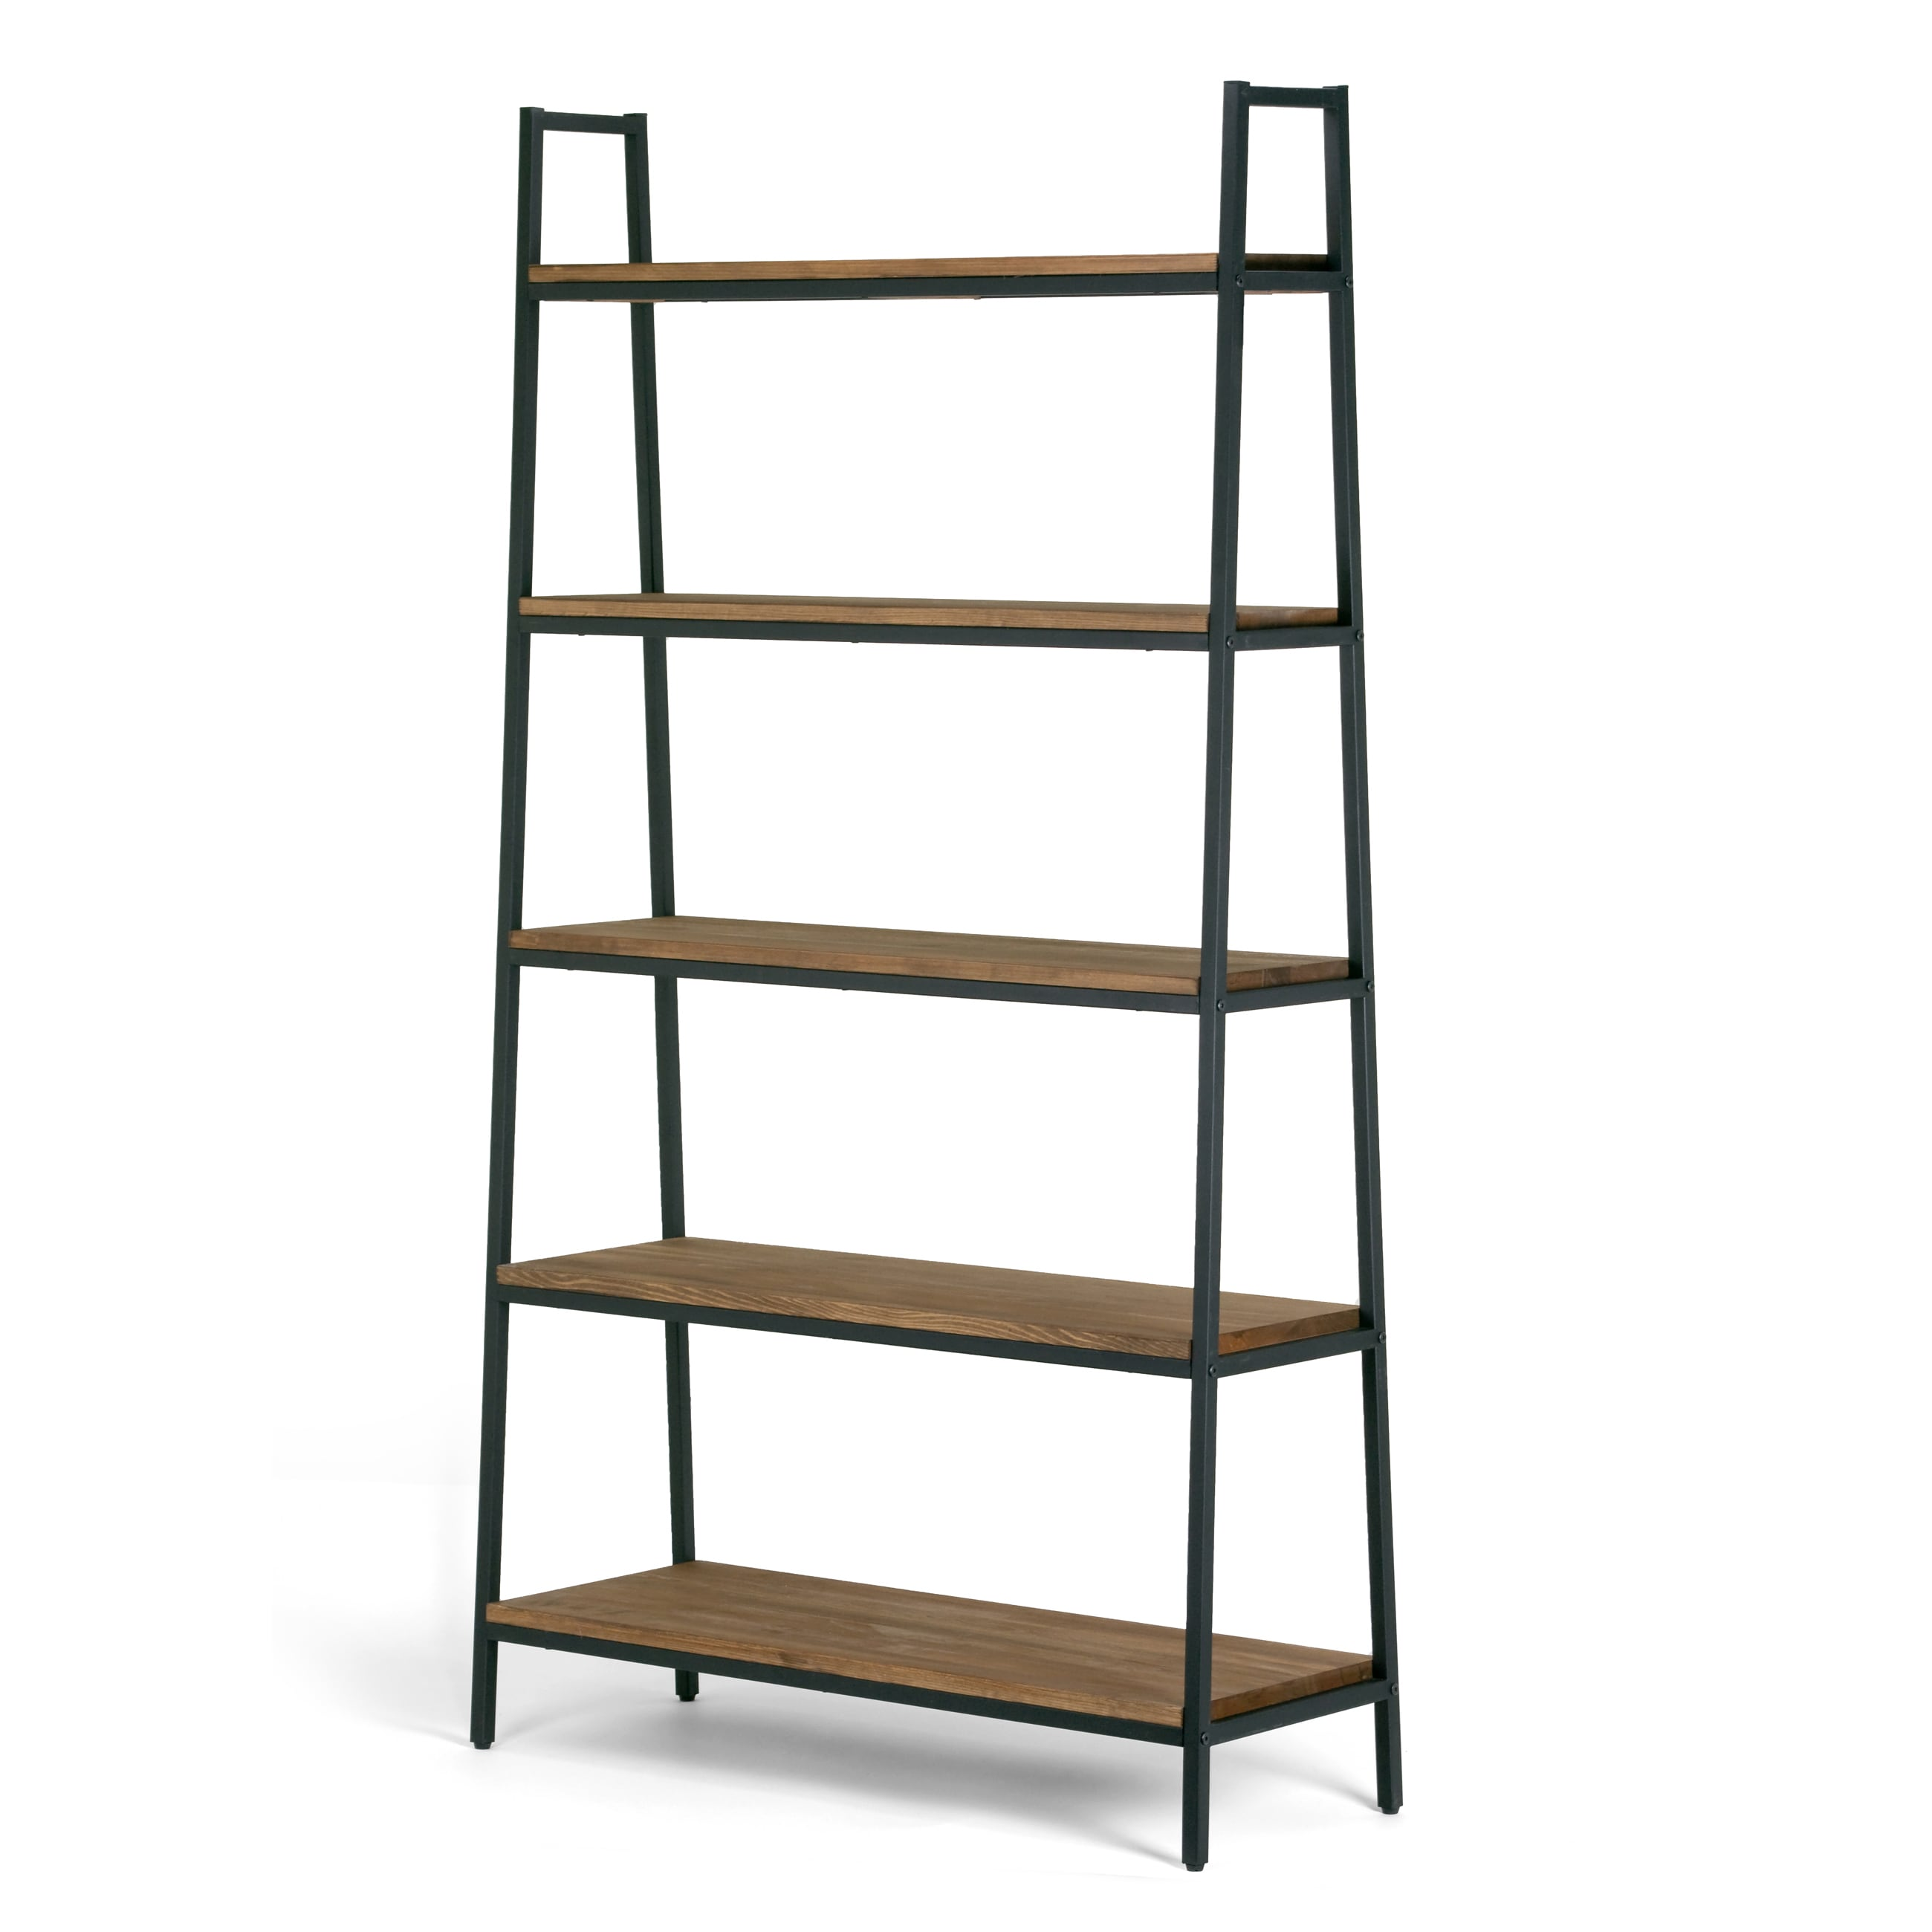 Etagere Metal Ailis Brown Pine Wood Metal Frame 71 5 Inch 5 Shelf Etagere Bookcase And Media Tower